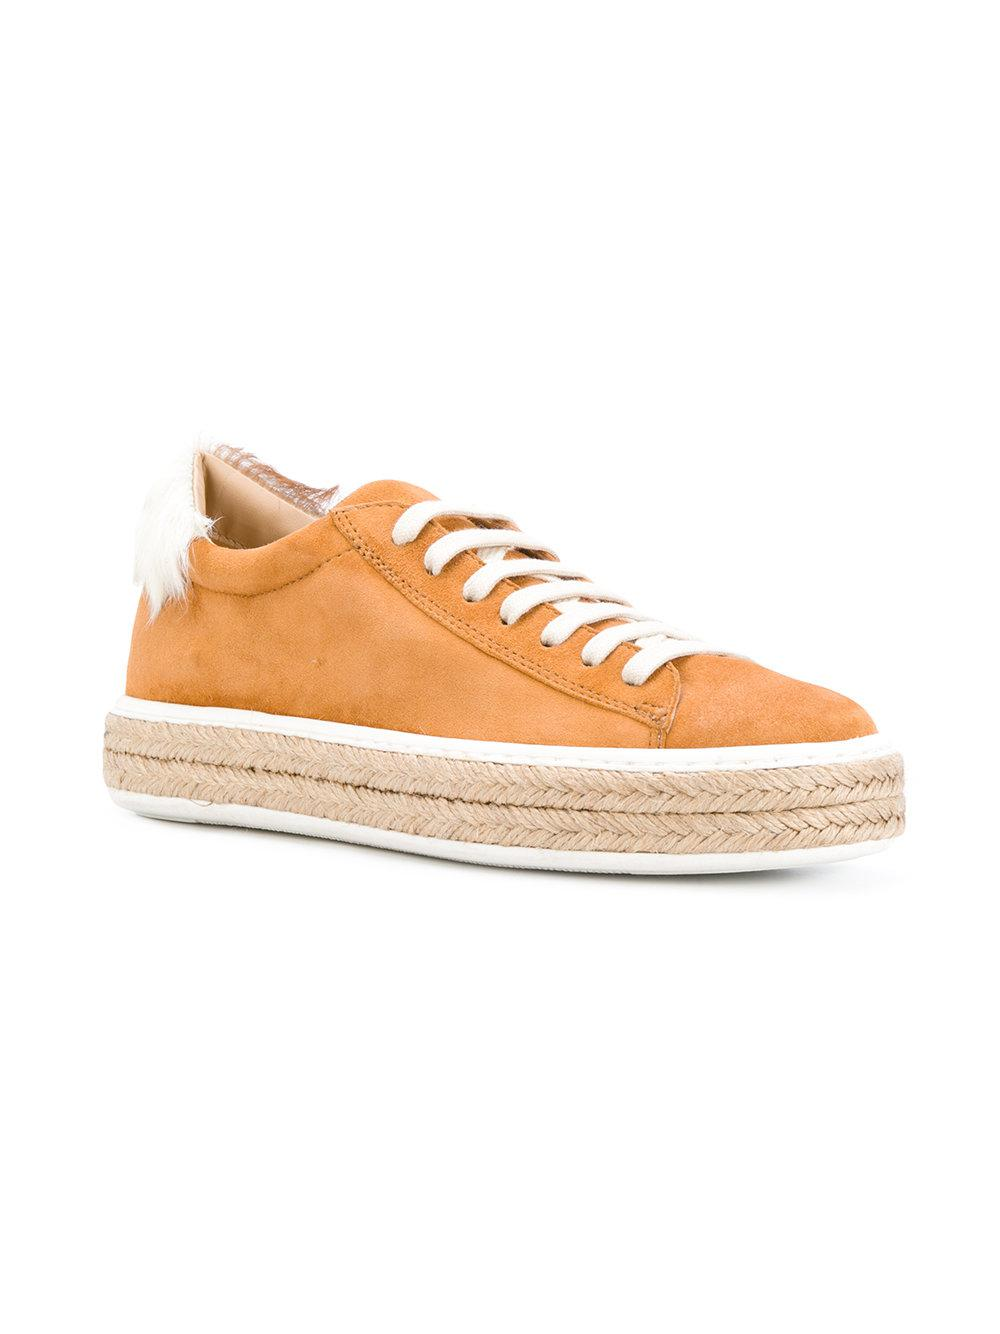 espadrille lace-up sneakers - Yellow & Orange Mr & Mrs Italy Clearance Footlocker Pictures With Paypal For Sale Big Sale Sale Online EFMoIeGM